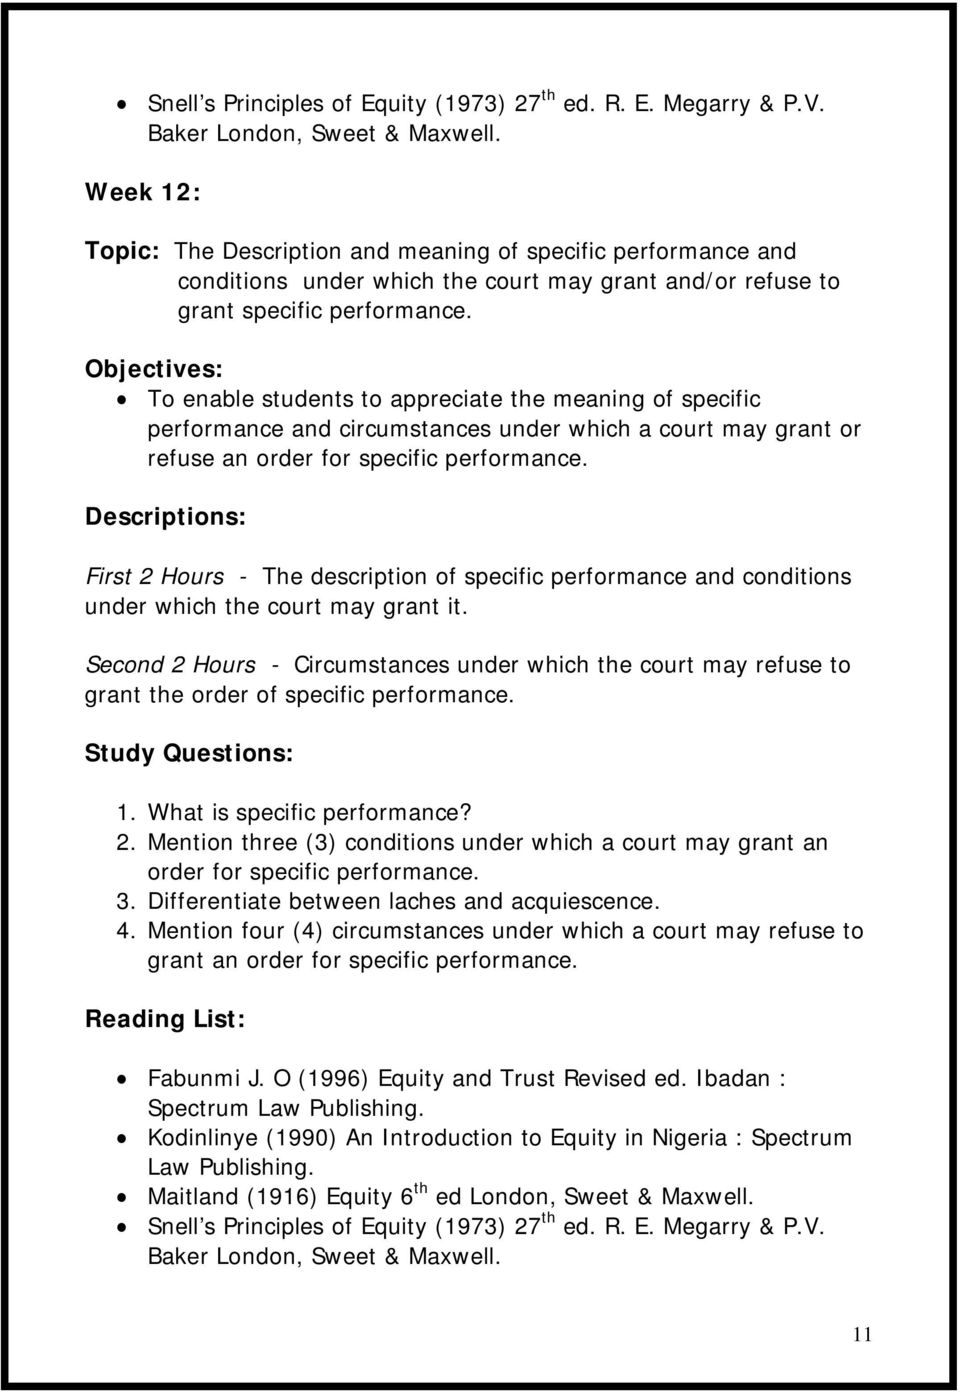 Objectives: To enable students to appreciate the meaning of specific performance and circumstances under which a court may grant or refuse an order for specific performance.